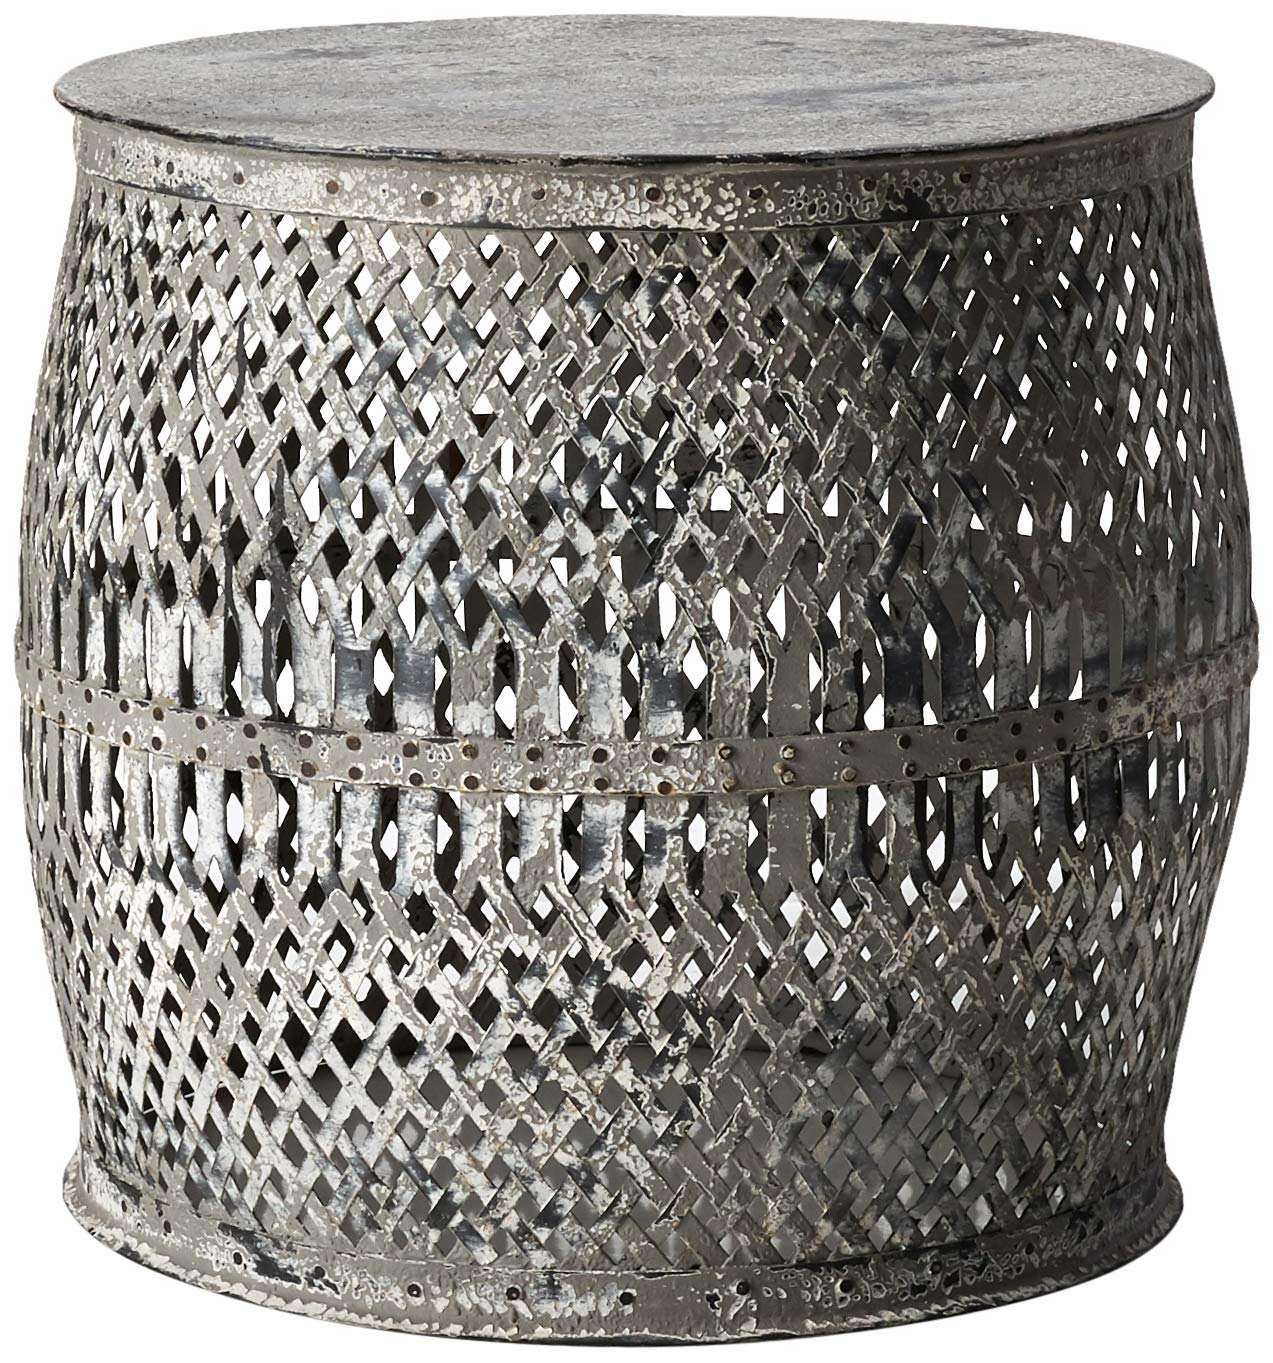 Creative Co-Op Distressed White Round Metal Drum Table